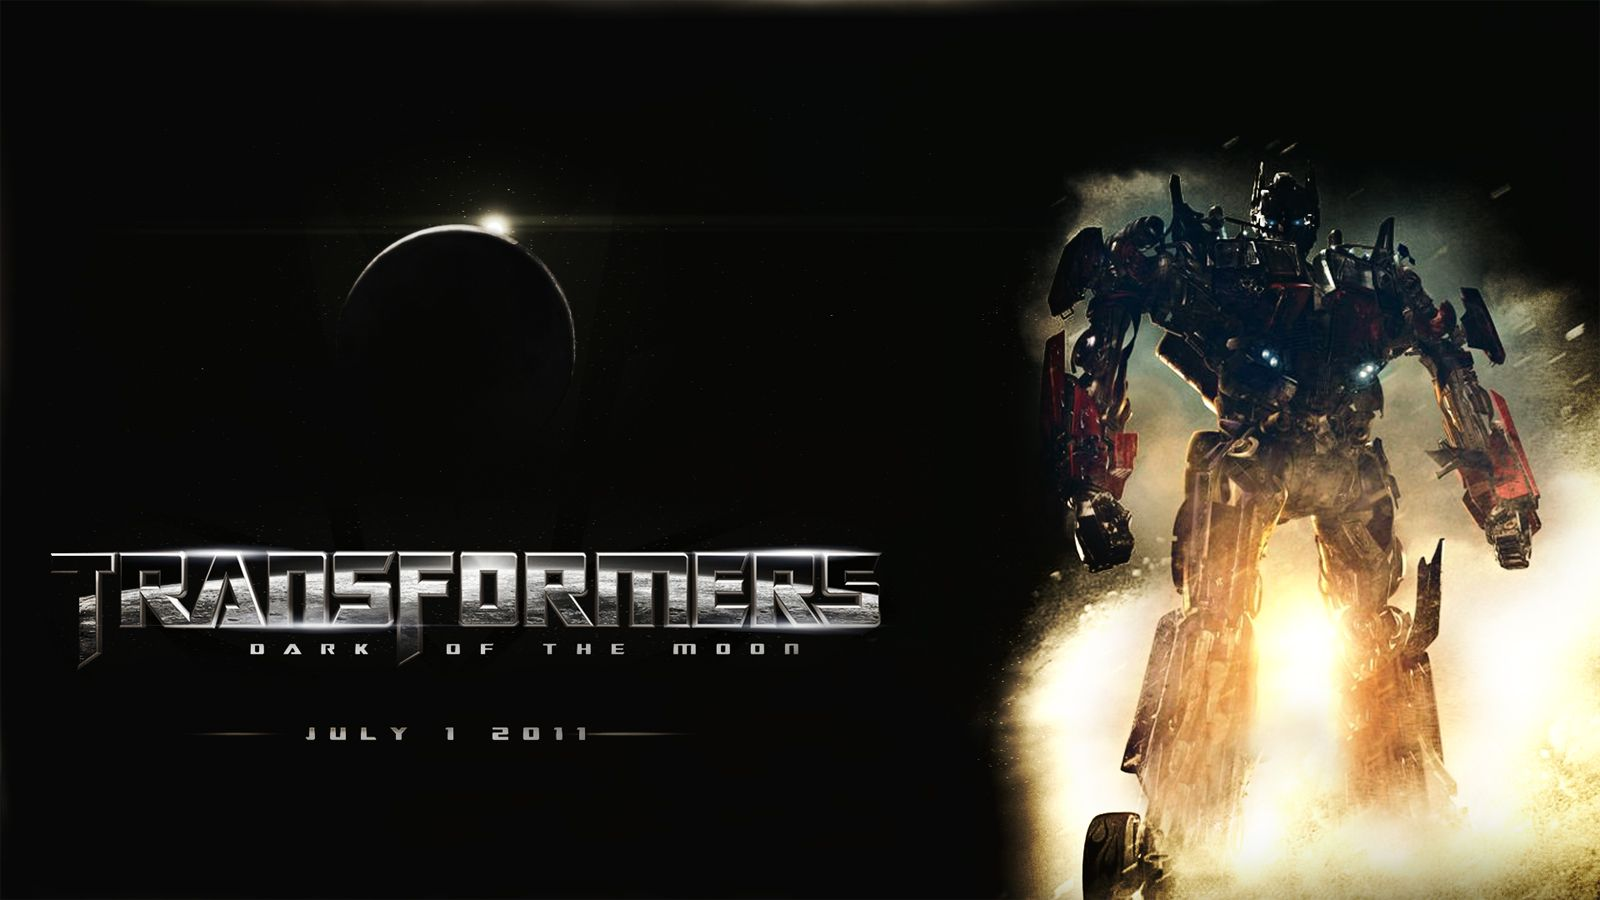 image detail for -transformers 3 dark of the moon movie trailer